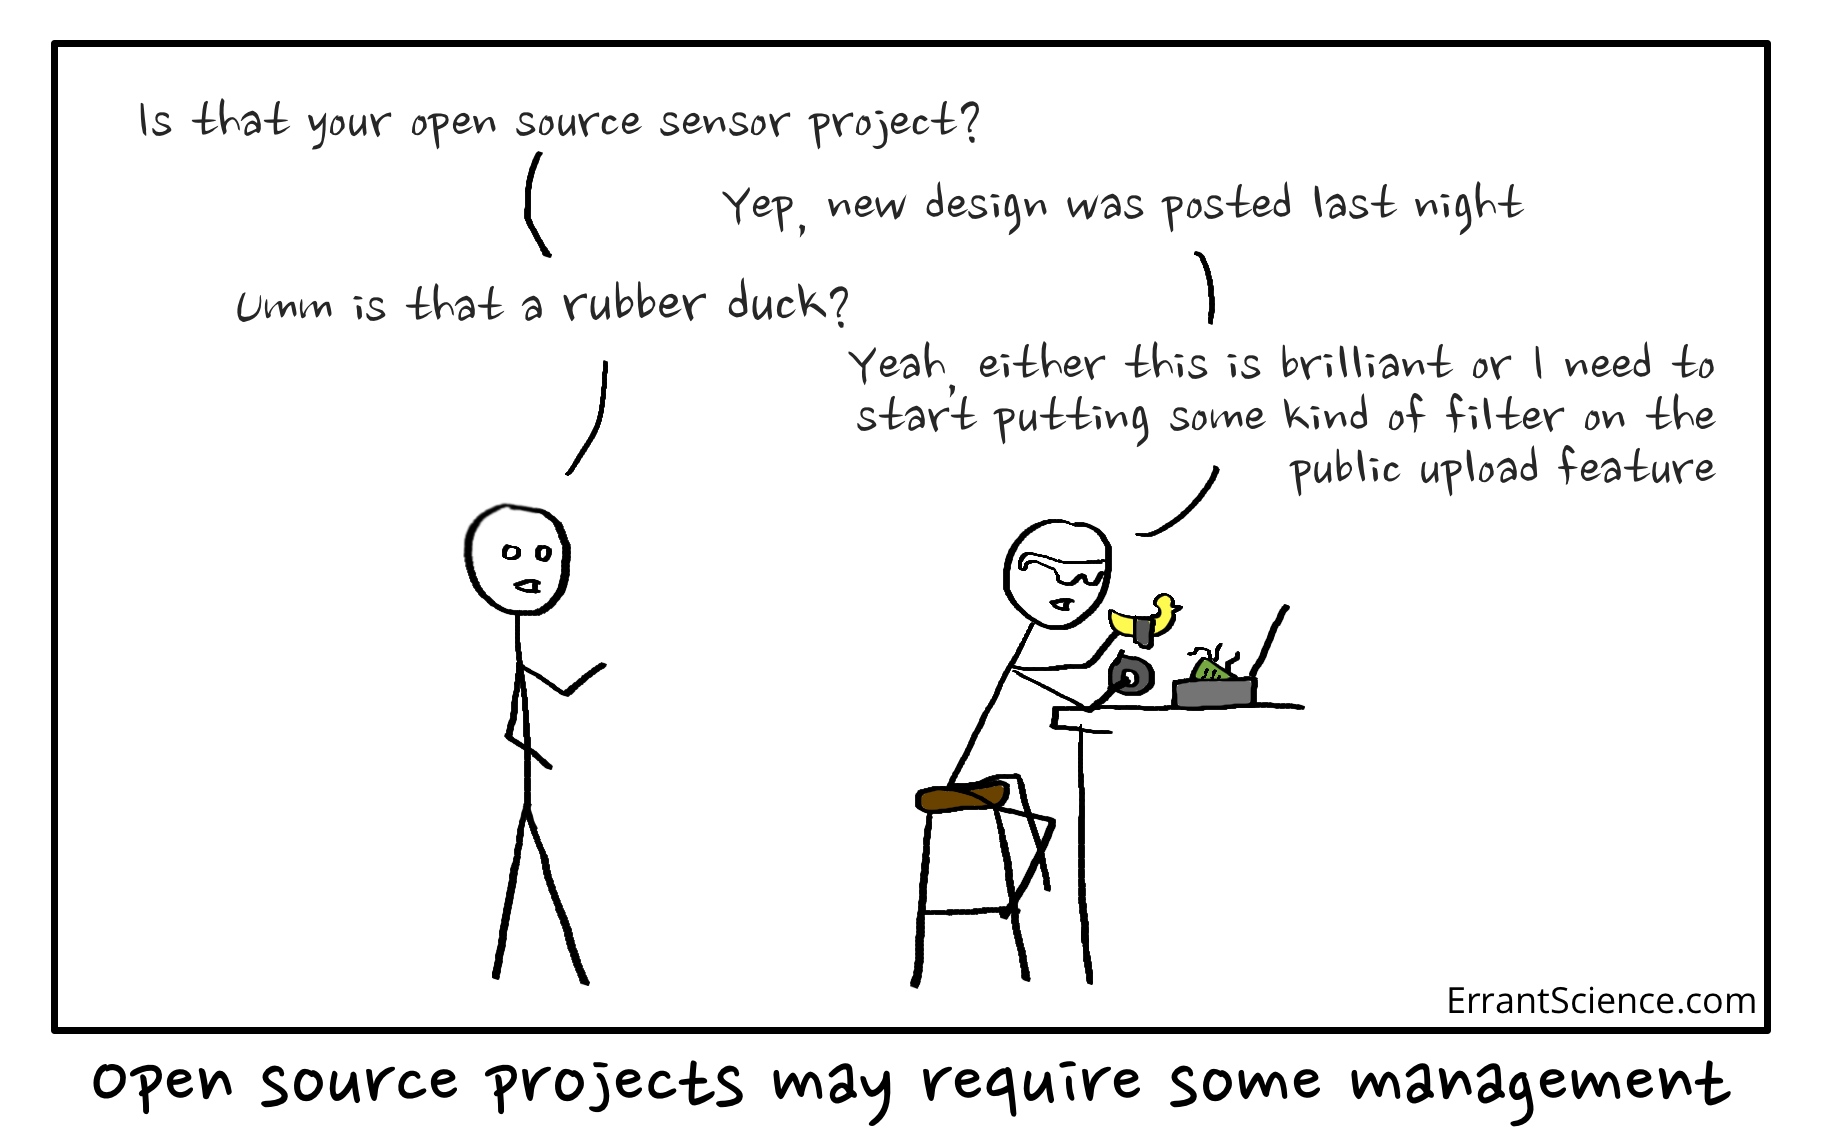 Open source rubber ducks